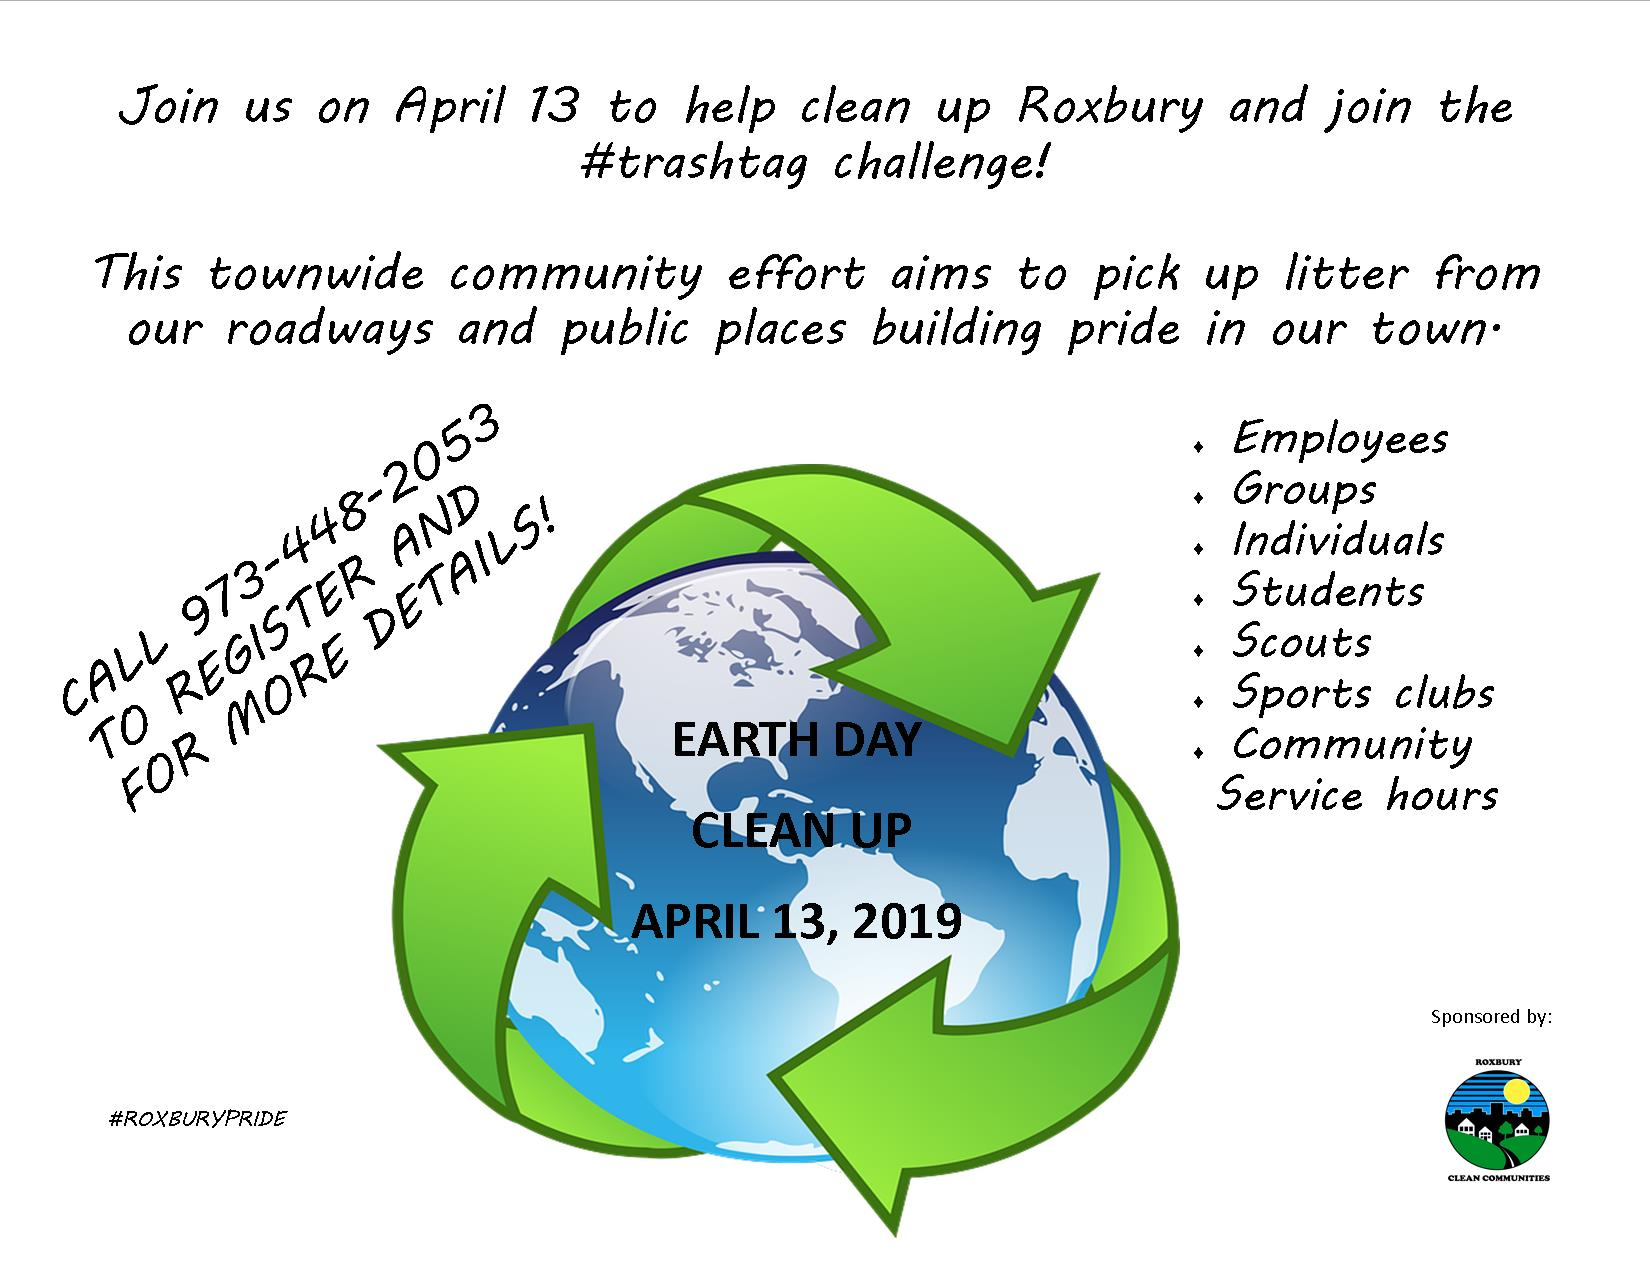 2019 Earth Day clean up day